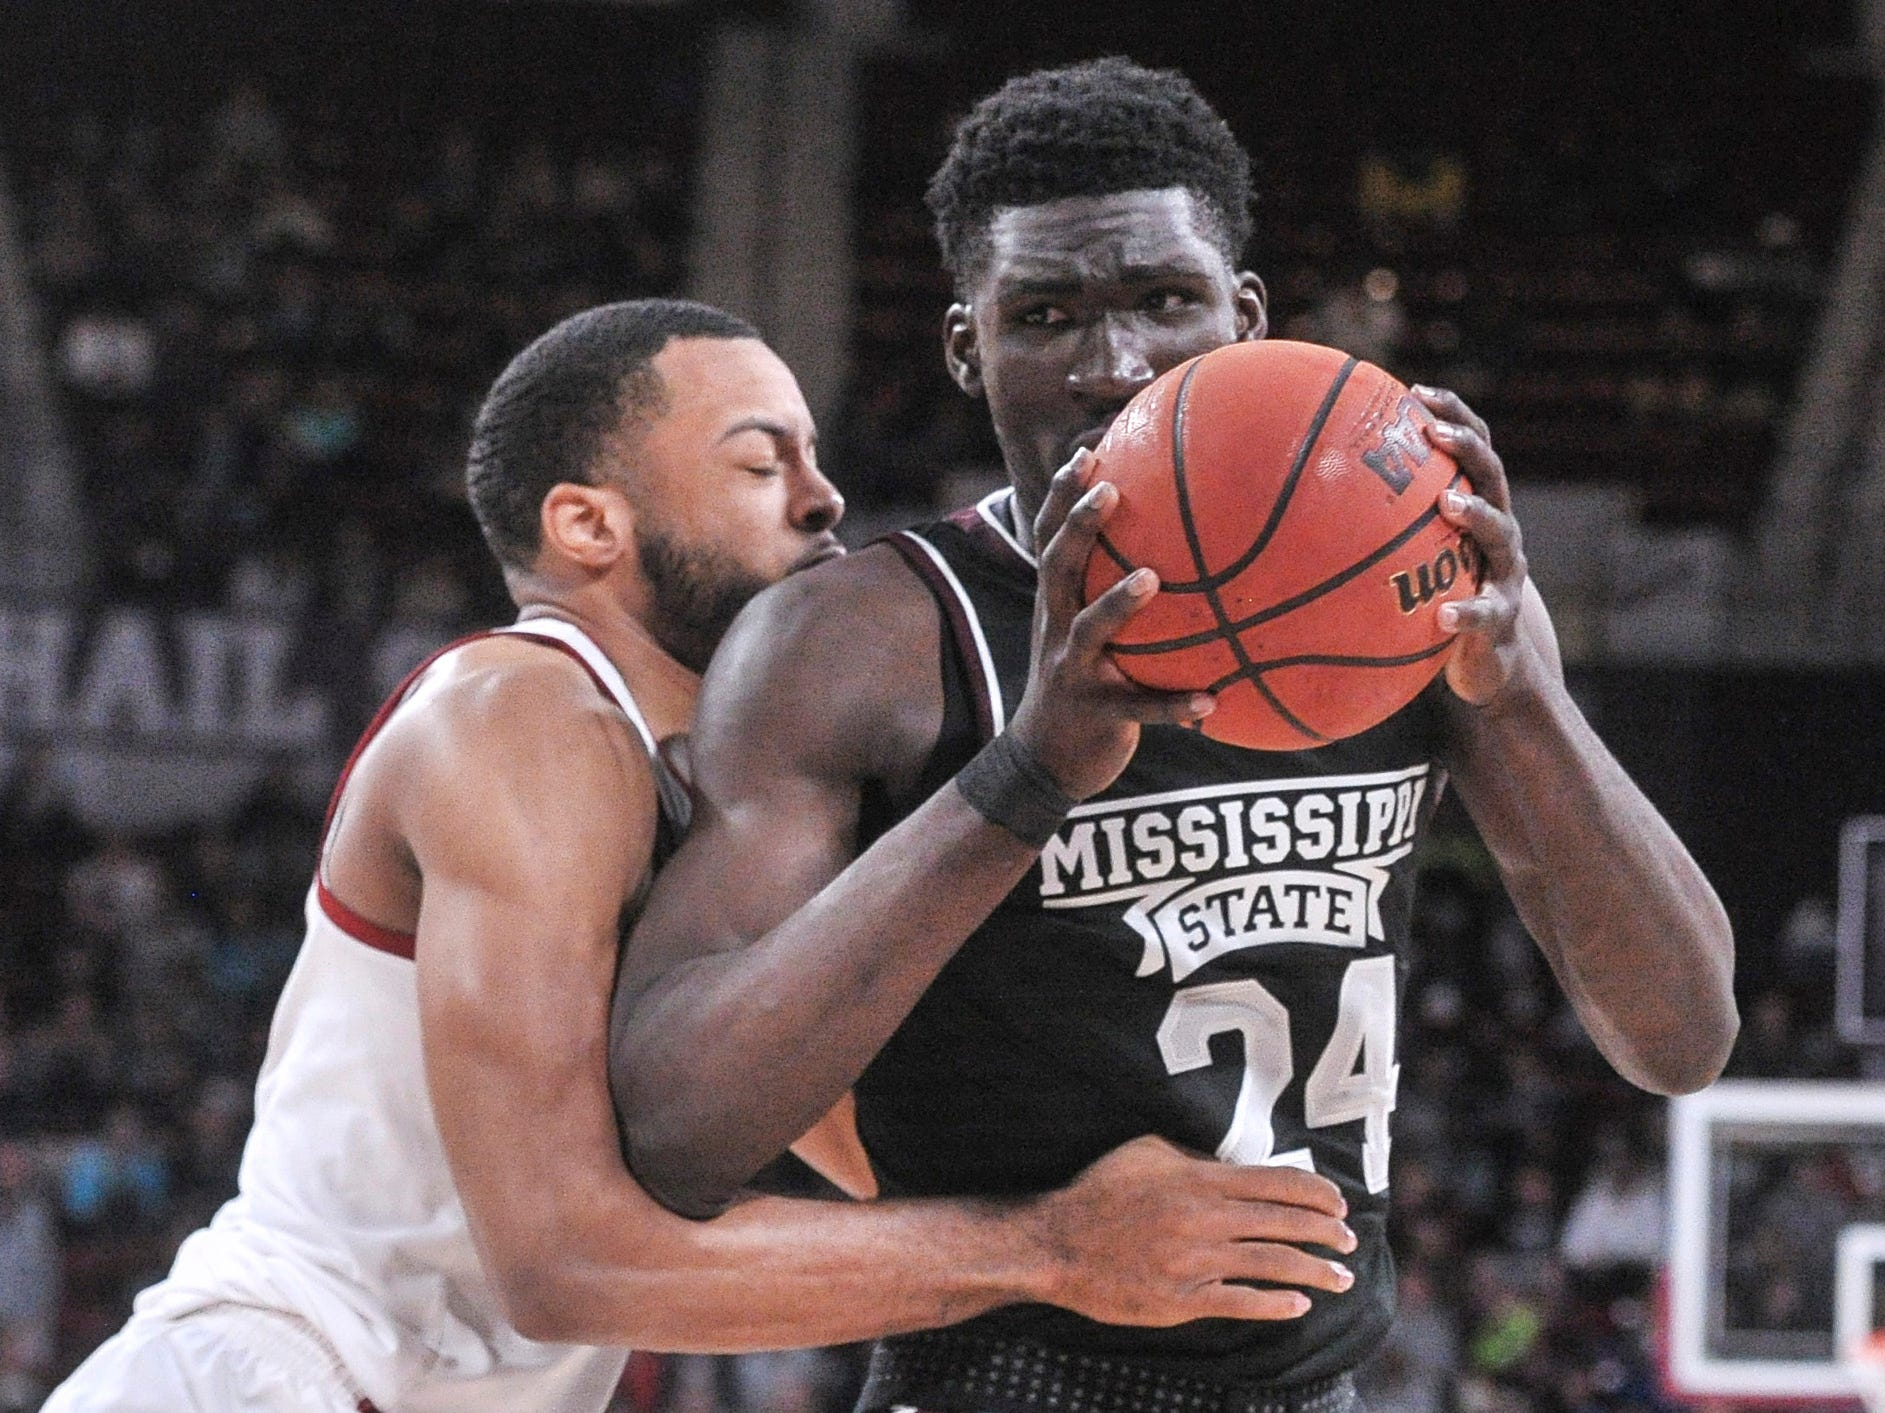 Feb 12, 2019; Starkville, MS, USA; Mississippi State Bulldogs forward Abdul Ado (24) goes to the basket against Alabama Crimson Tide forward Galin Smith (30) during the first half at Humphrey Coliseum. Mandatory Credit: Justin Ford-USA TODAY Sports